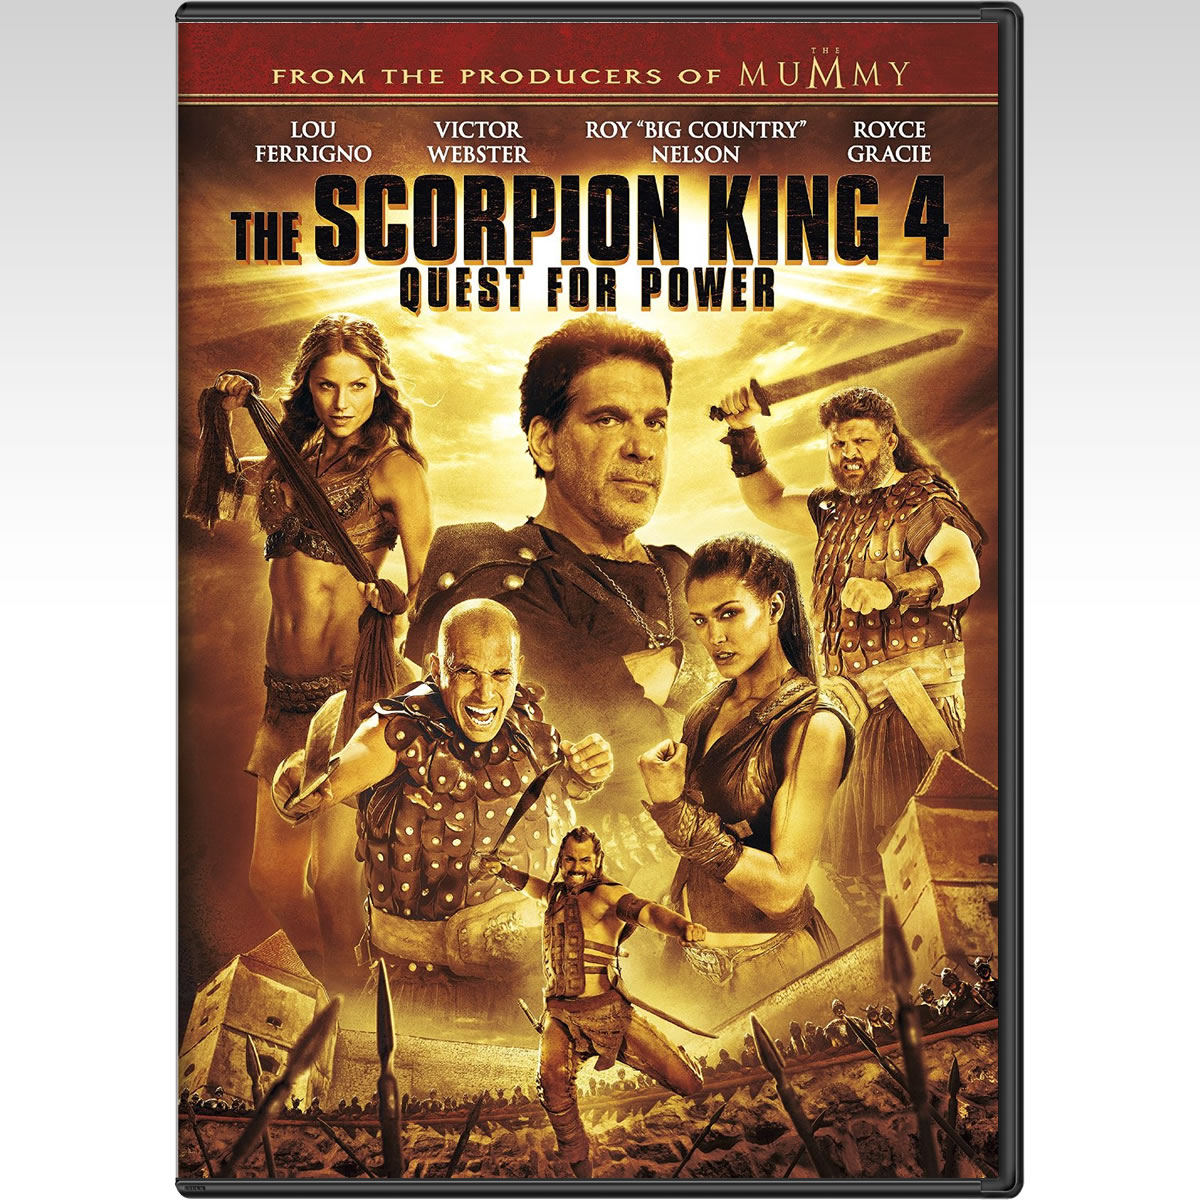 THE SCORPION KING 4: QUEST FOR POWER - SCORPION KING 4: ���� ��� ��� ������� (DVD)